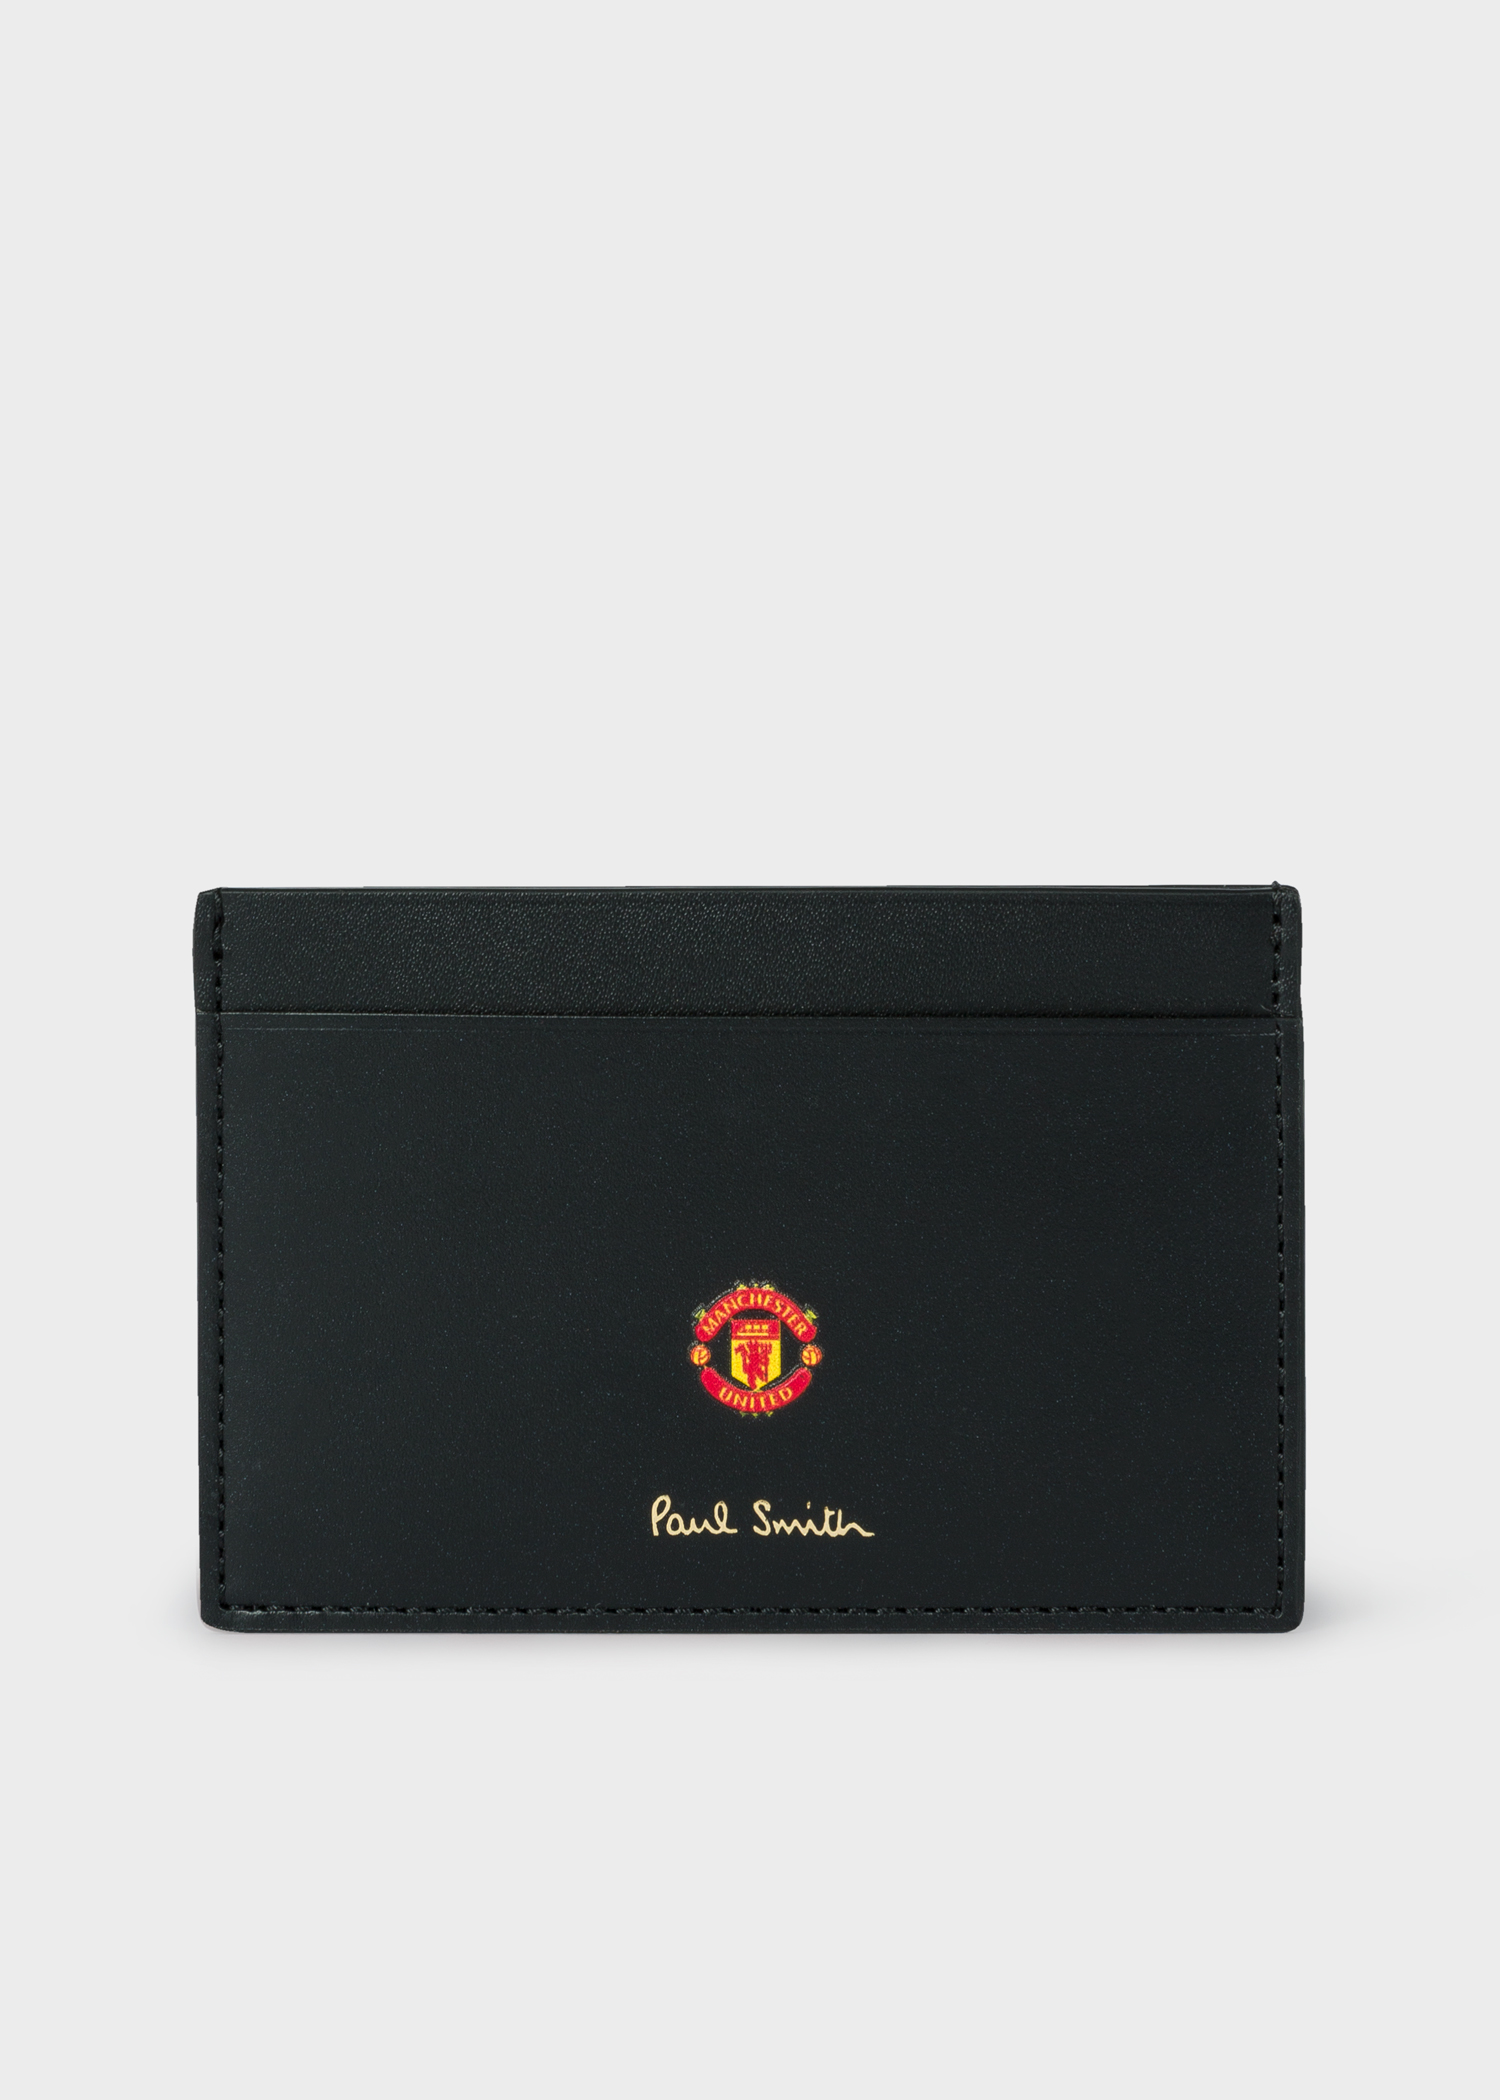 United Credit Card Customer Service Paul Smith Manchester United Men S Vintage Rosette Print Leather Credit Card Holder